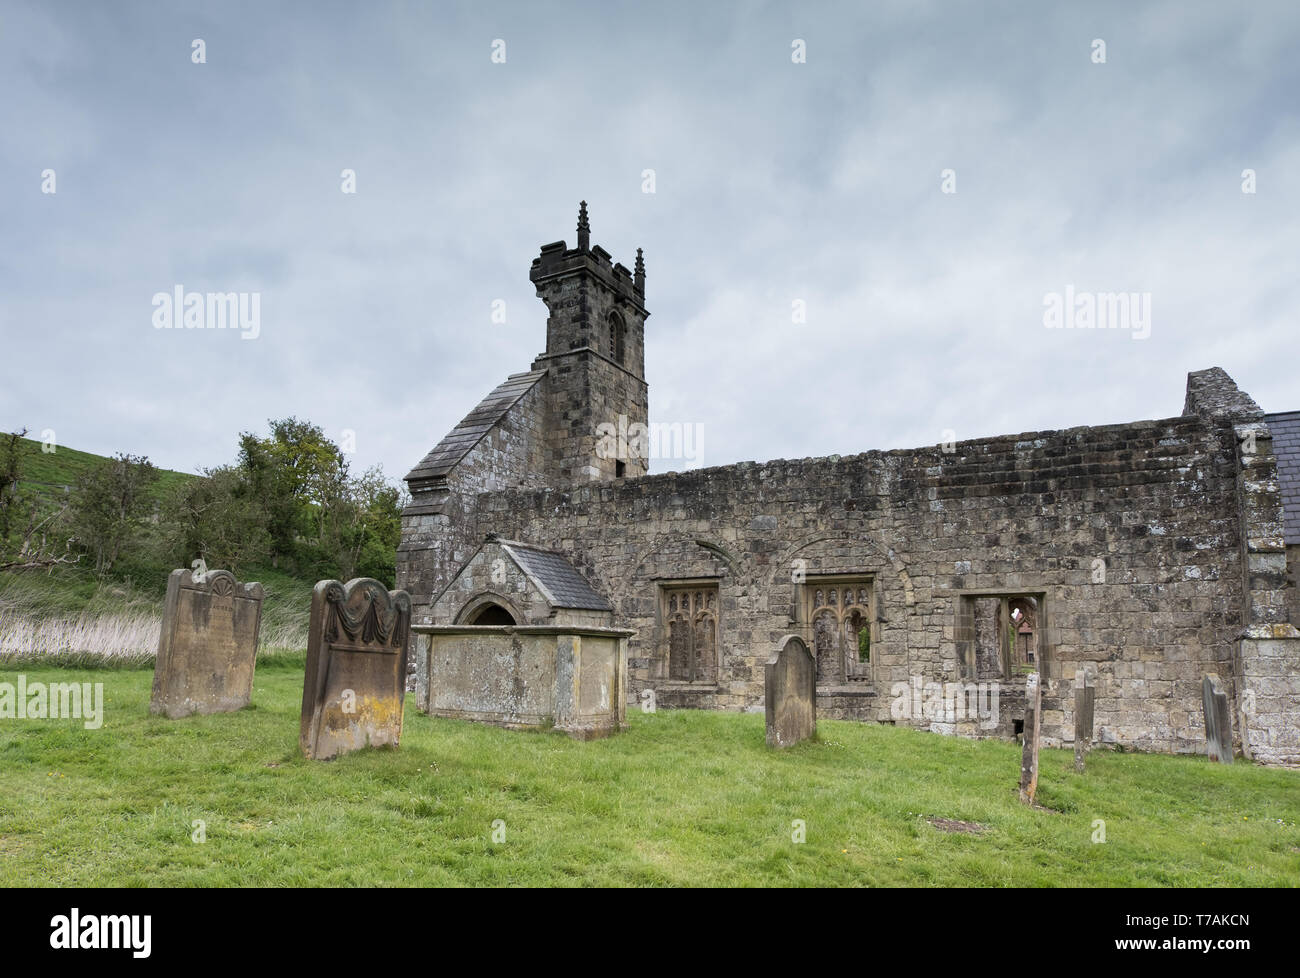 St Martins church in the deserted medieval village of Wharram Percy in North Yorkshire - Stock Image